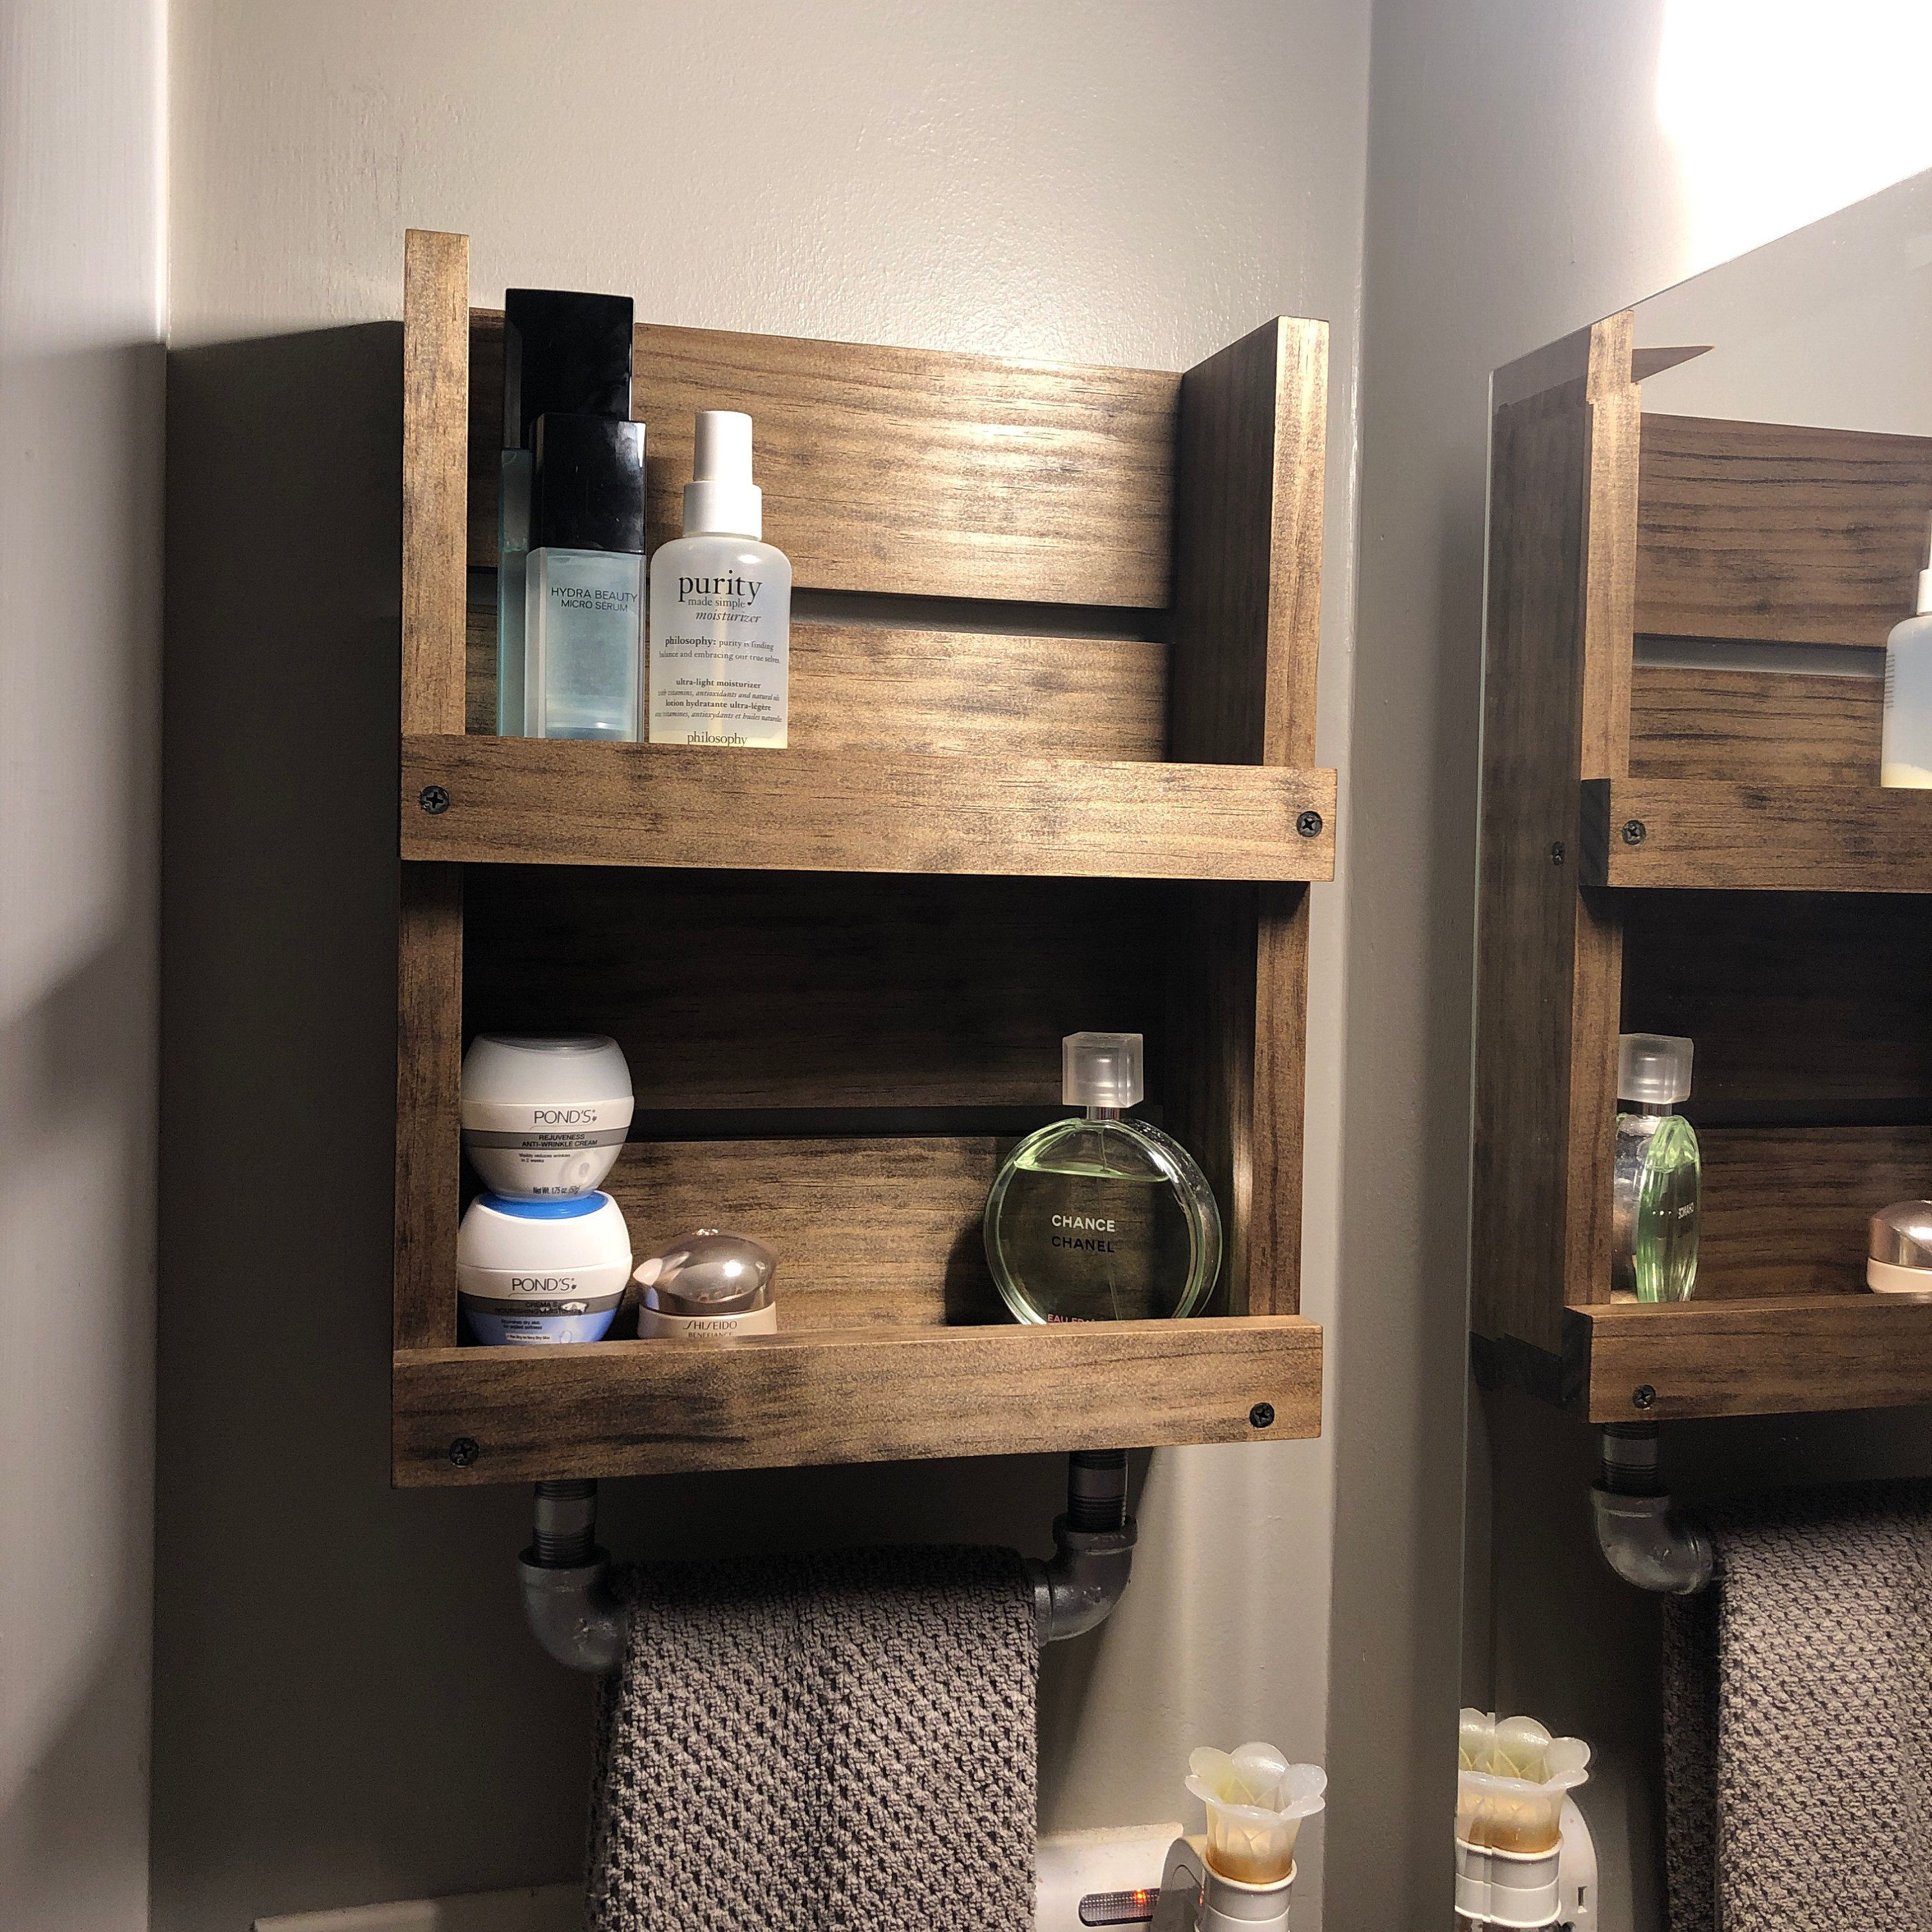 Bathroom Wall Shelf With Towel Bar Wall Mounted Small Shelf Etsy Wall Mounted Bathroom Storage Bathroom Wood Shelves Wall Mounted Shelves